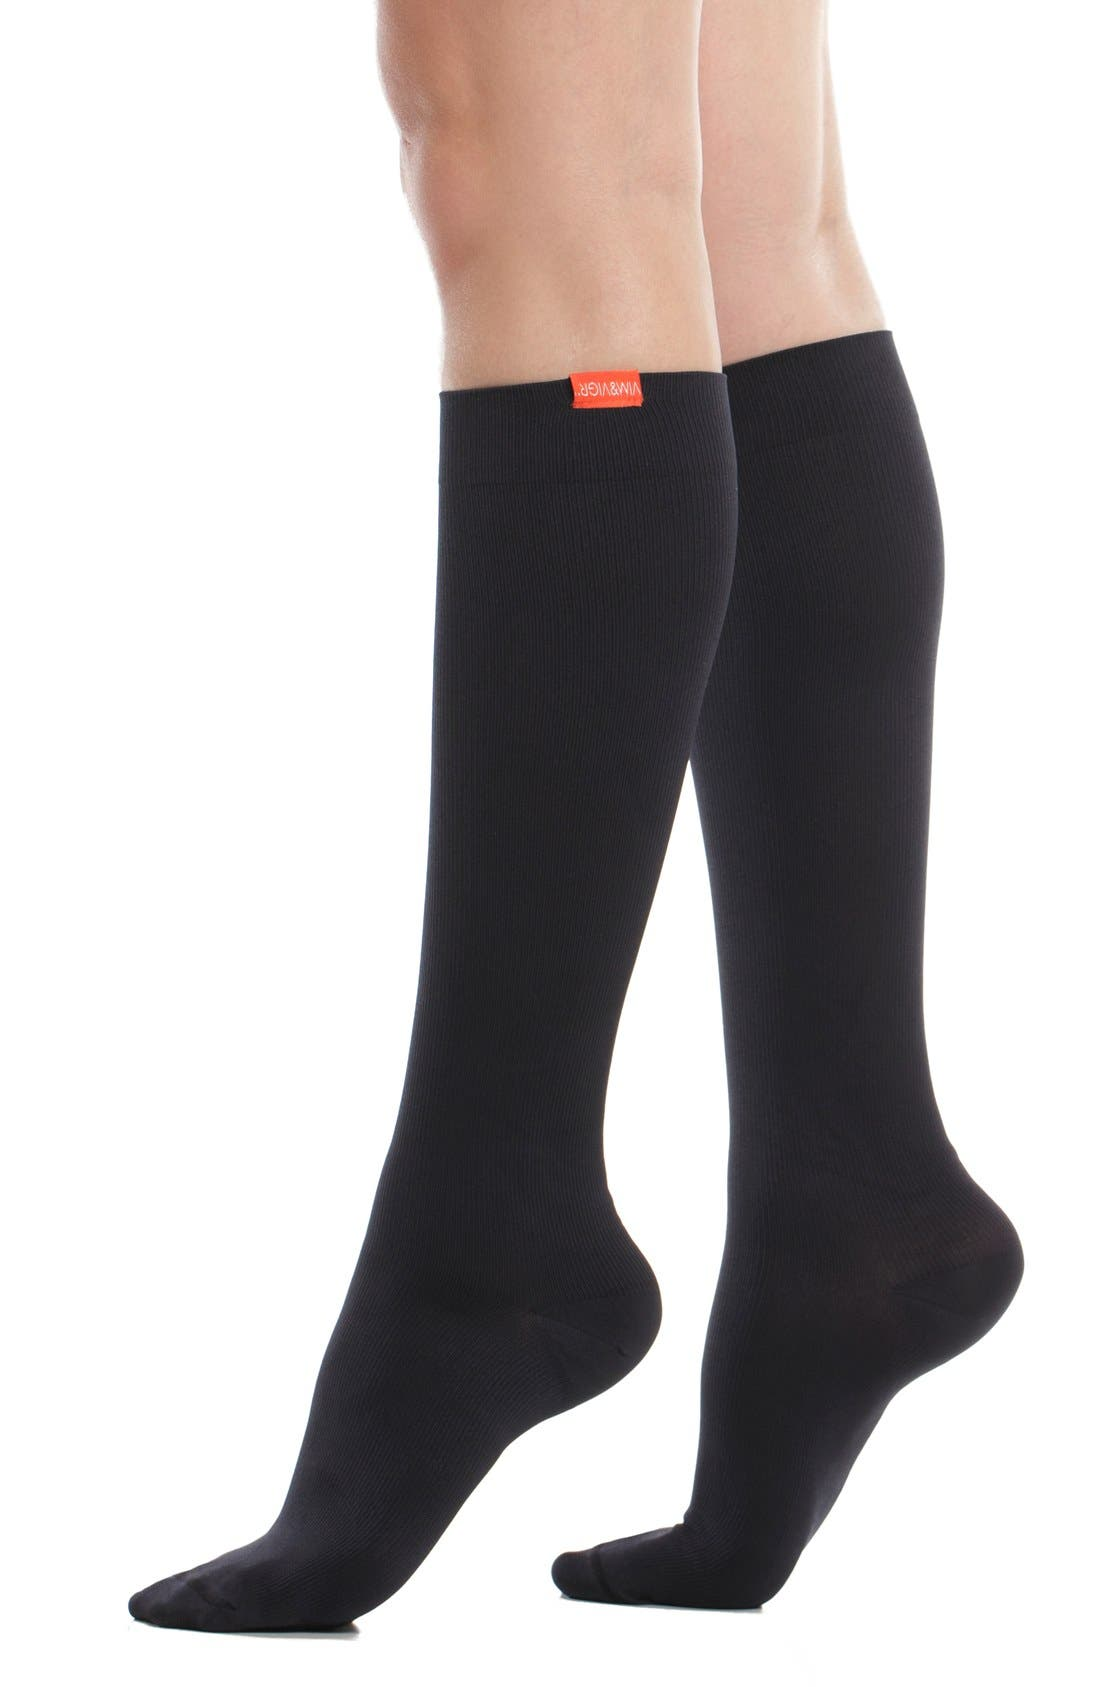 Solid Graduated Compression Trouser Socks,                         Main,                         color, Black